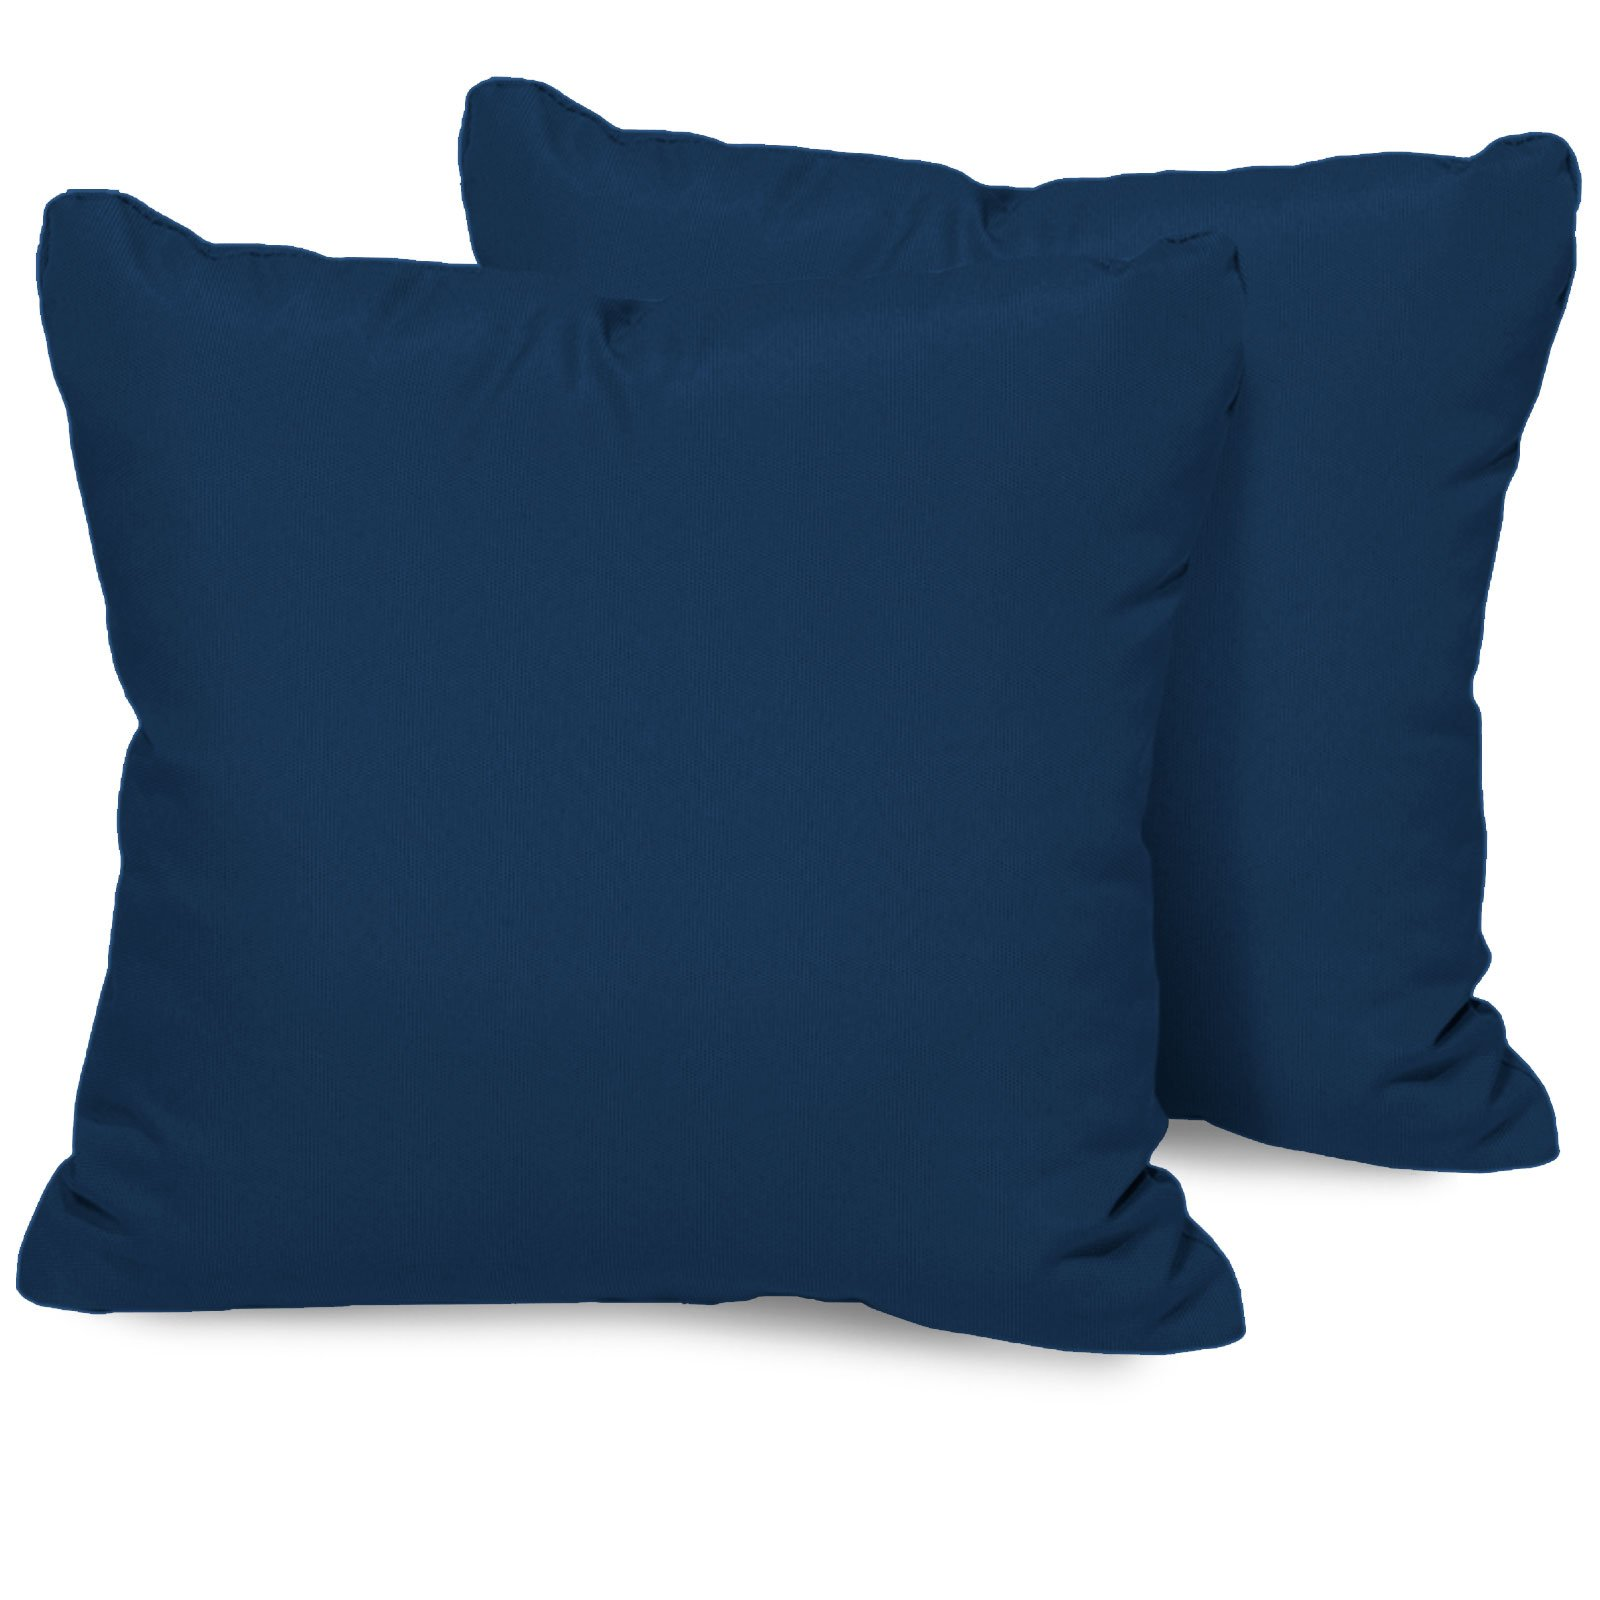 TK Classics Set of 2 Outdoor Square Throw Pillows, Navy by TK Classics